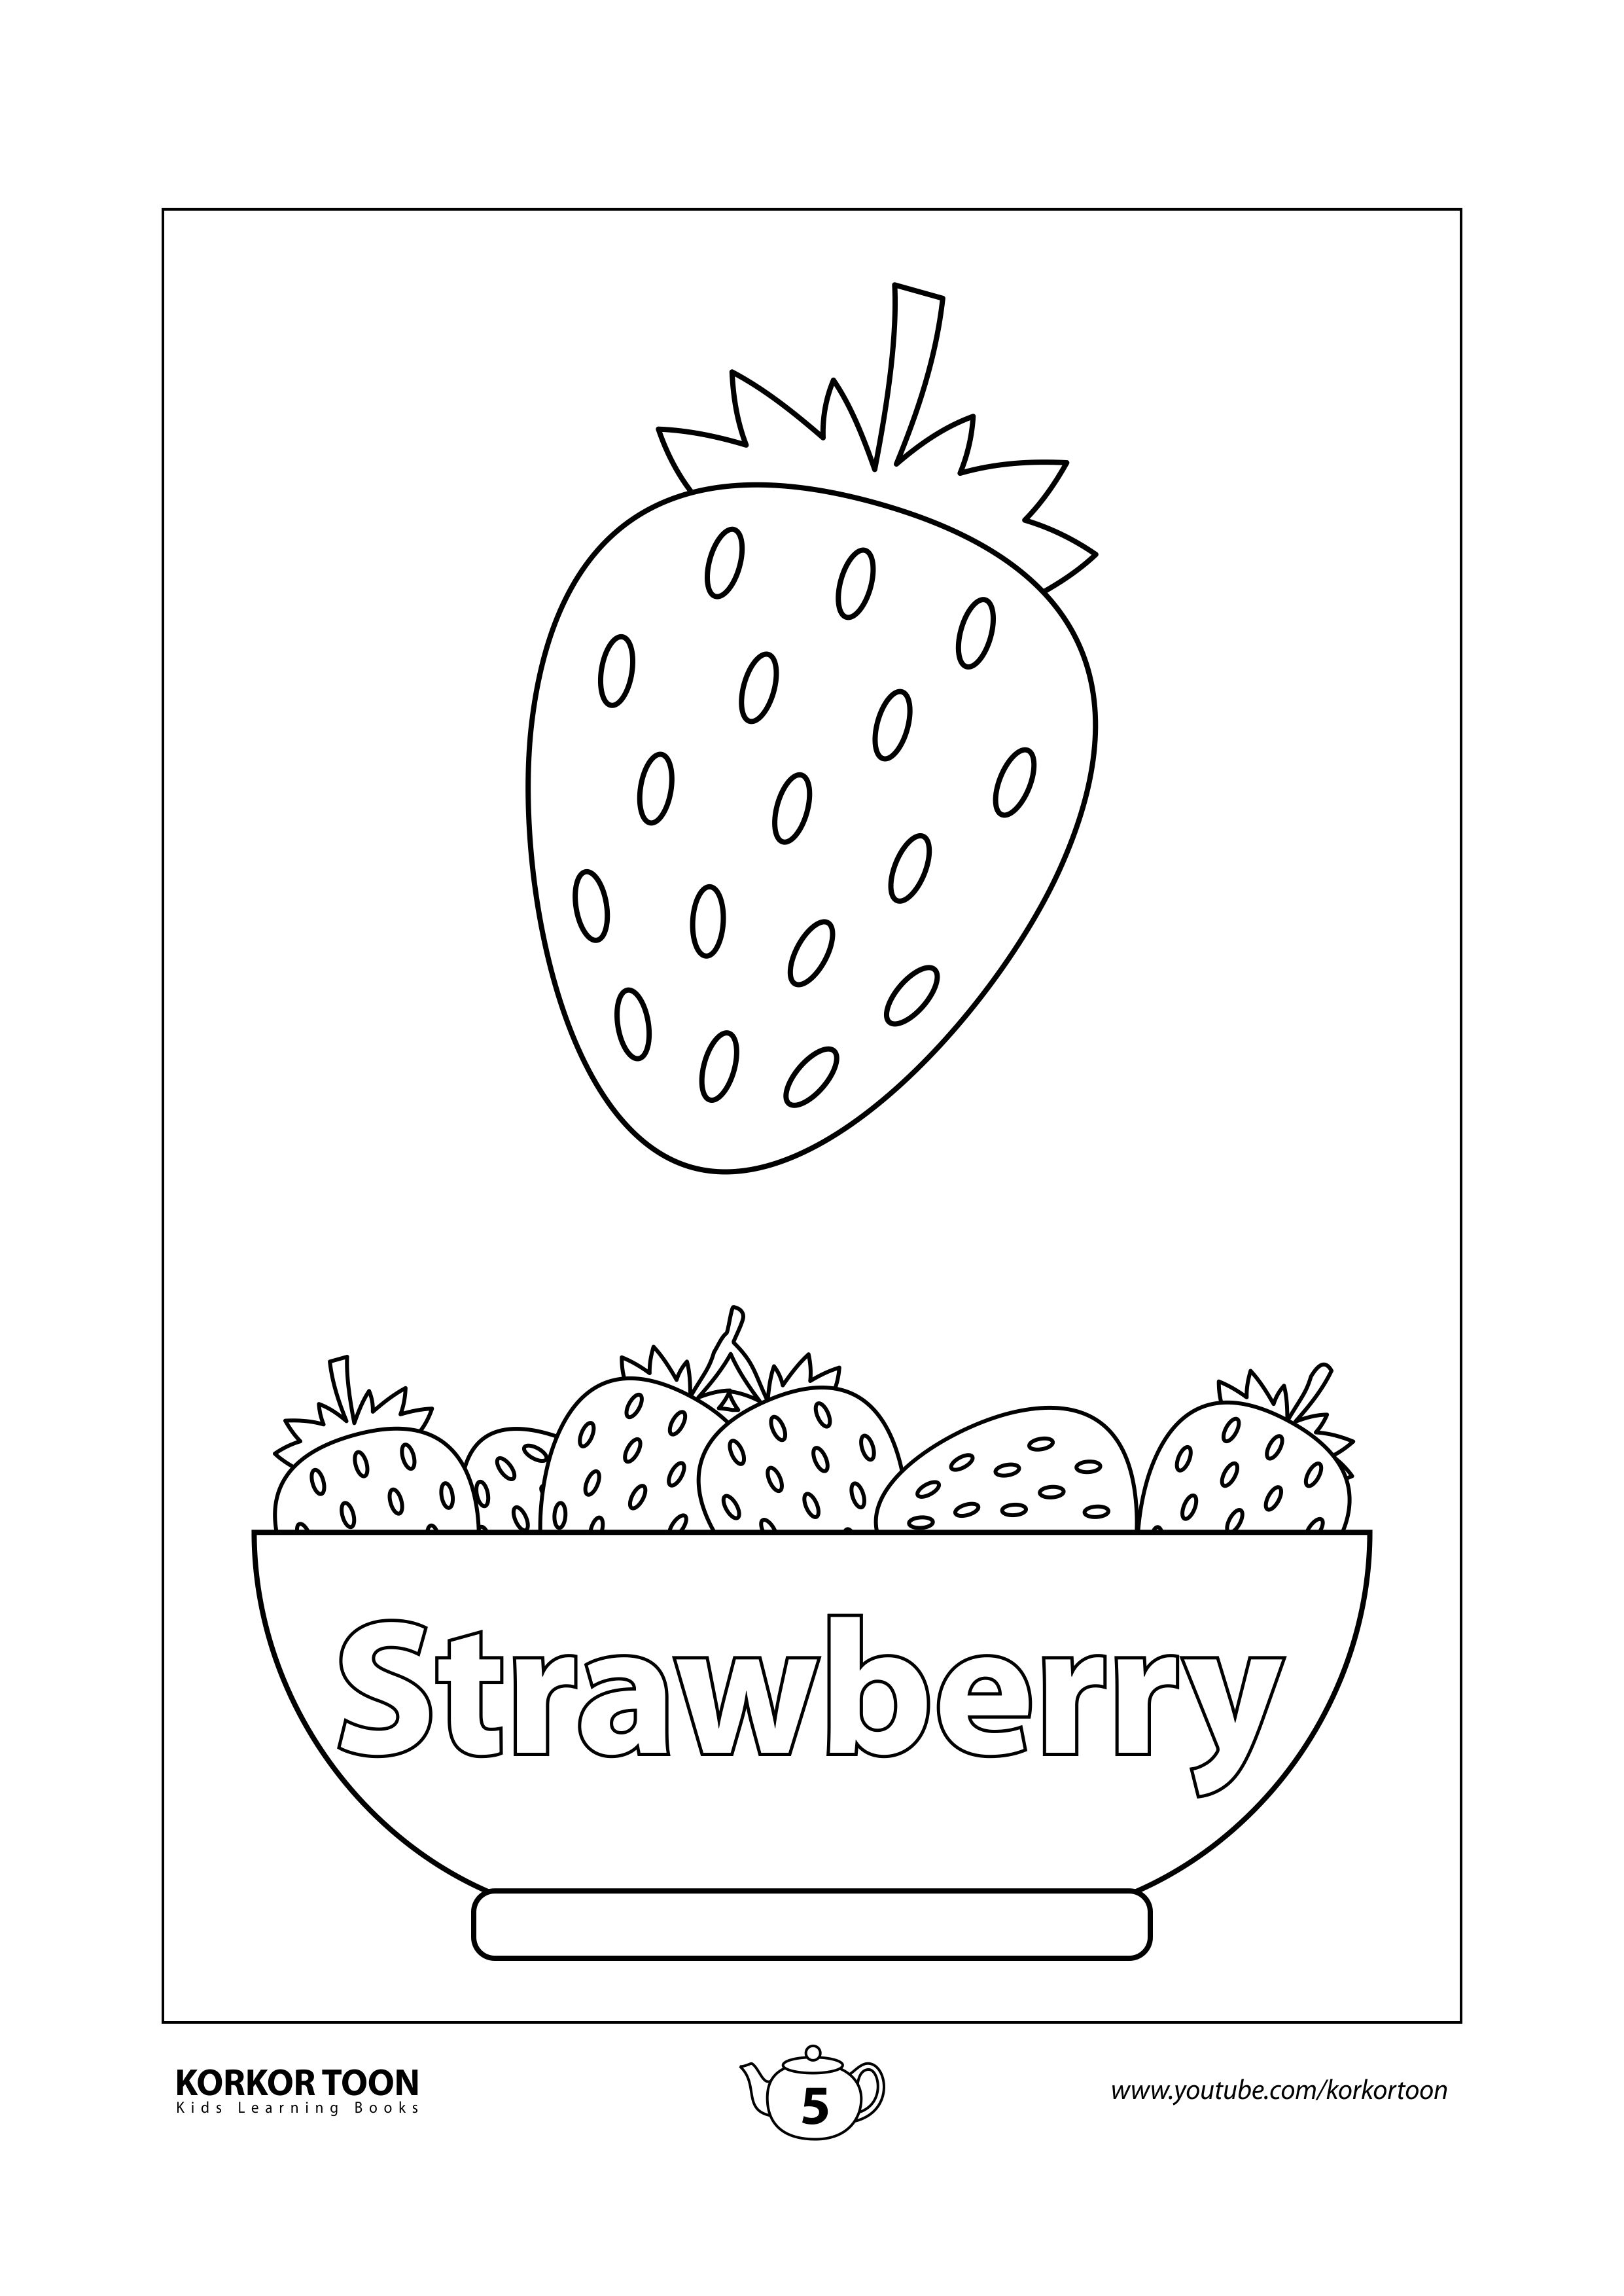 Fruits Coloring Book For Kids Strawberry Page 5 Coloring Books Kids Coloring Books Printables Free Kids